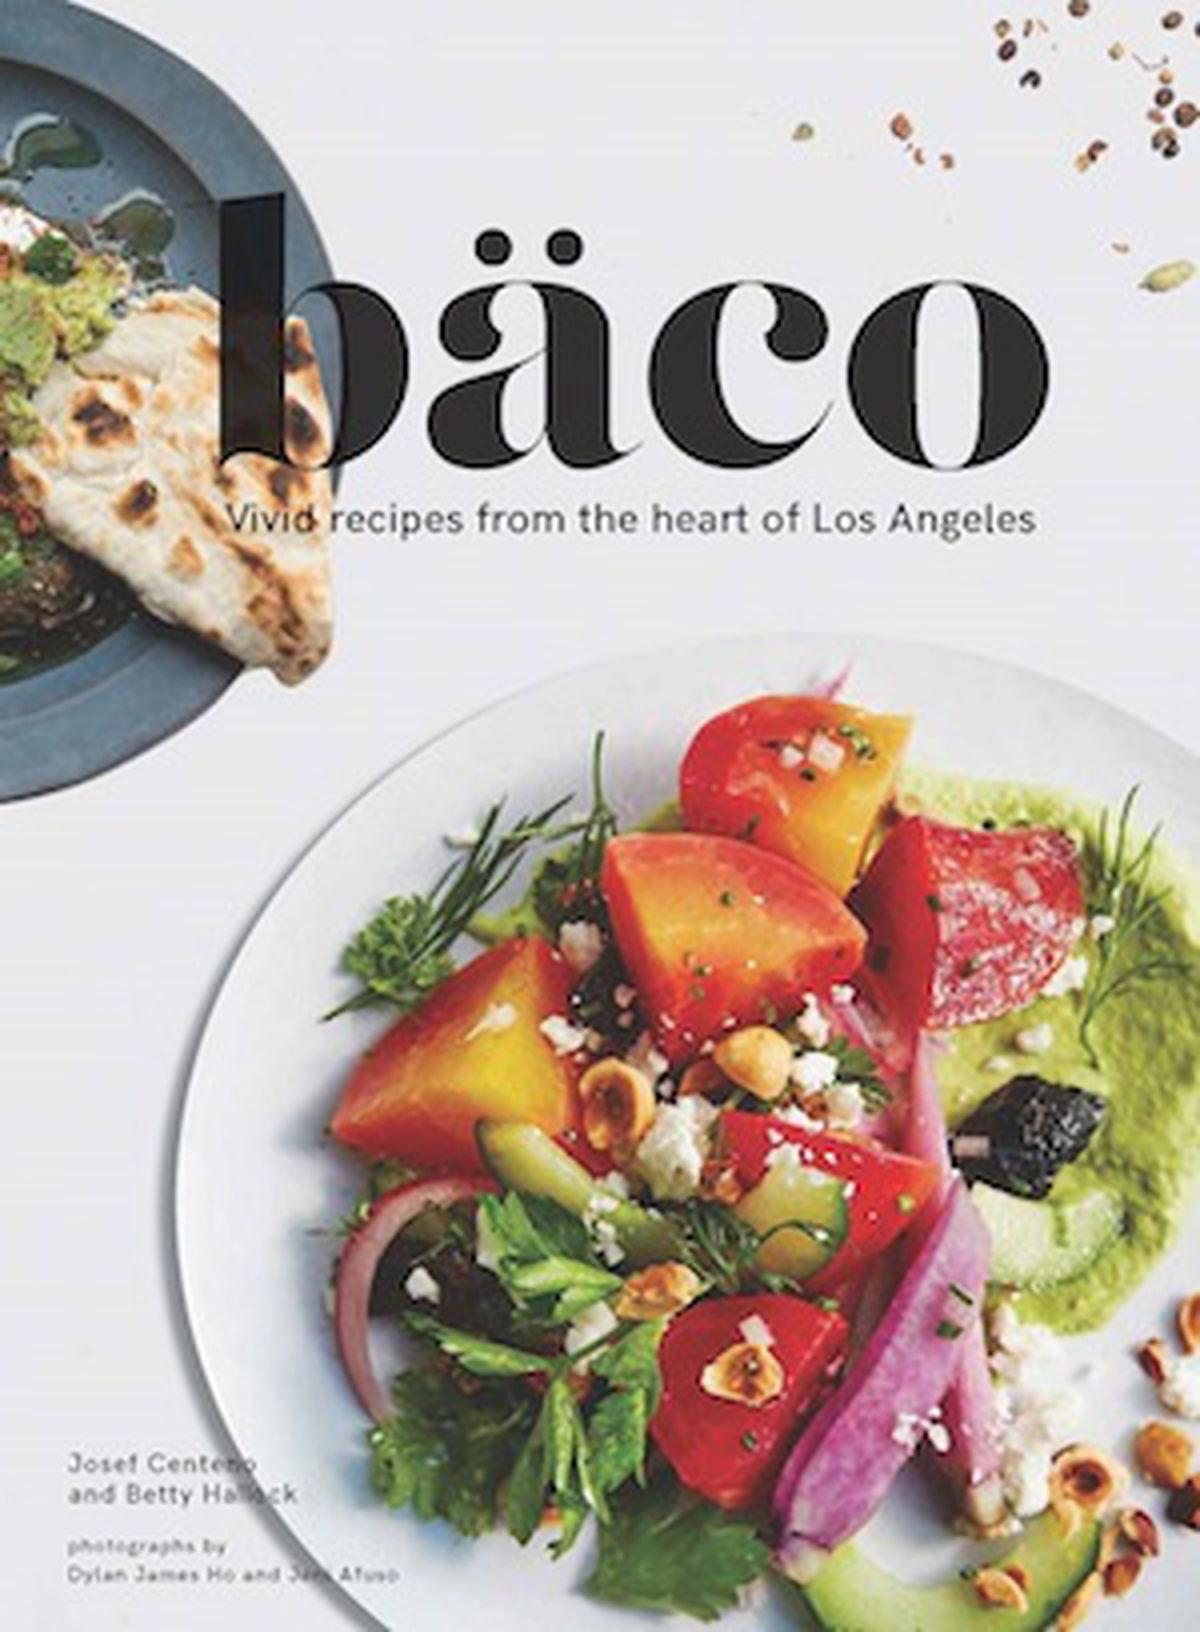 The biggest restaurant cookbooks of fall 2017 eater baco vivid recipes from the heart of los angeles josef centeno betty hallock chronicle books september 5 forumfinder Gallery